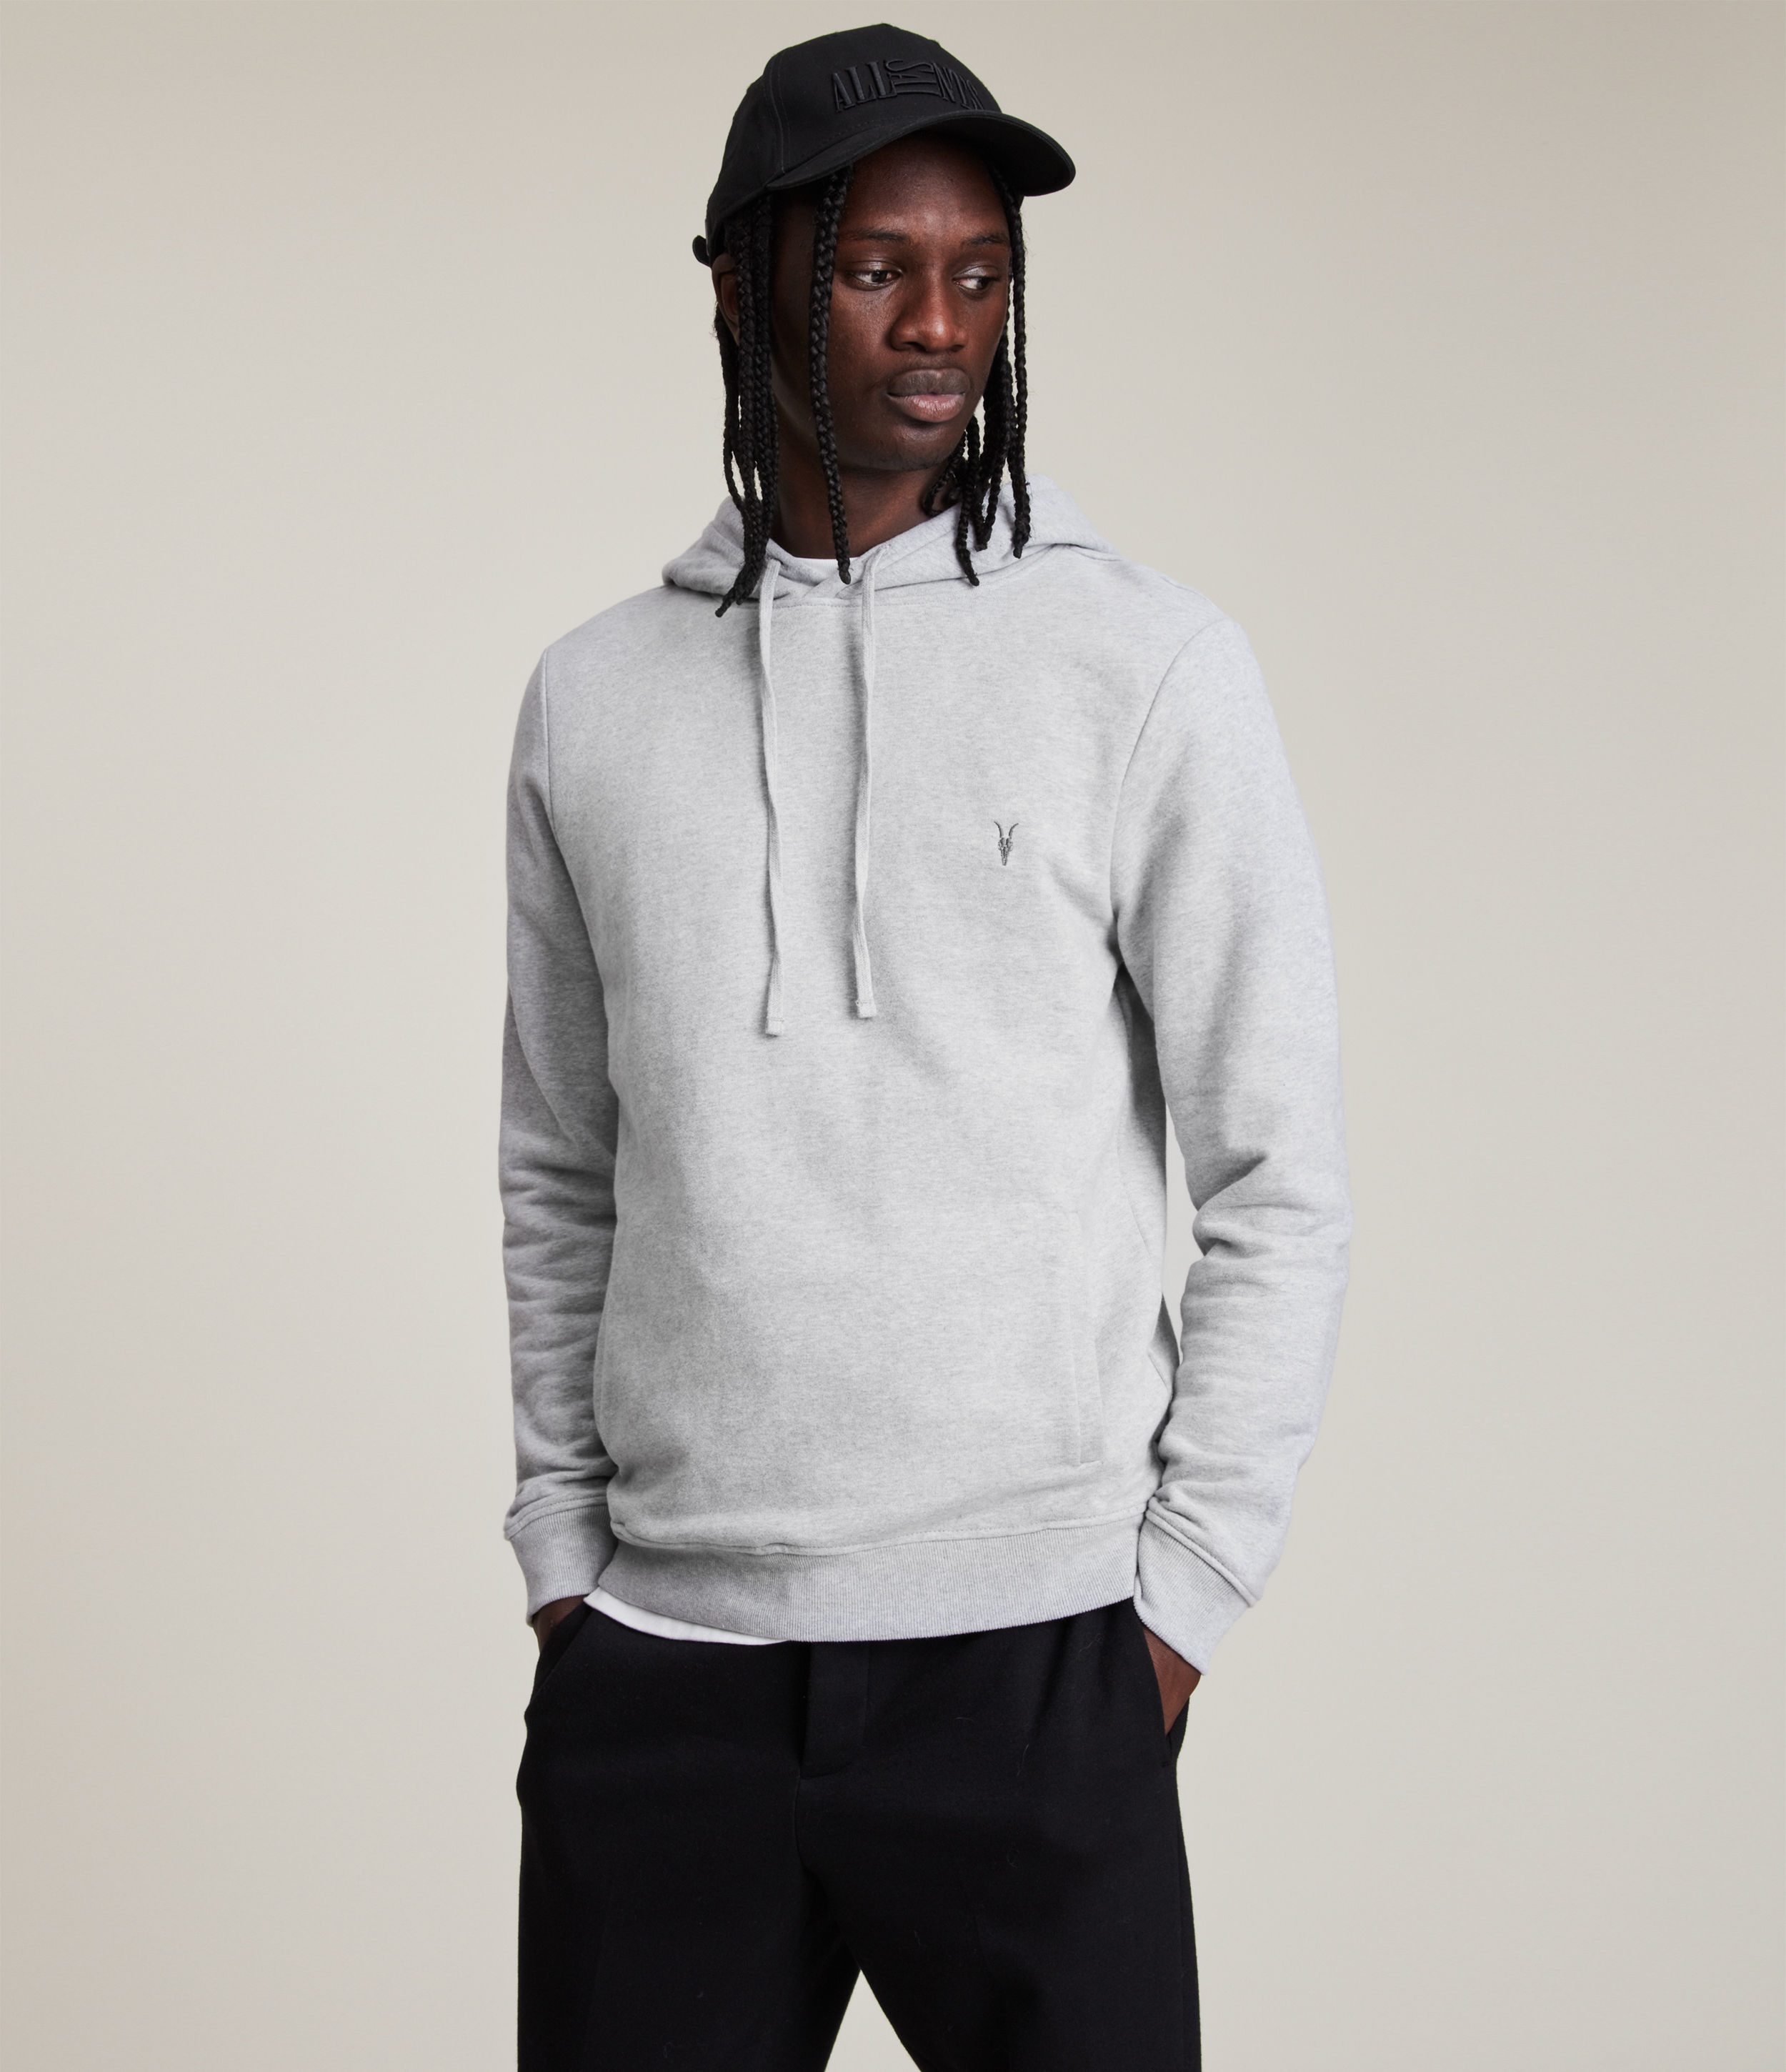 AllSaints Men's Cotton Slim Fit Raven Hoodie, Grey, Size: L